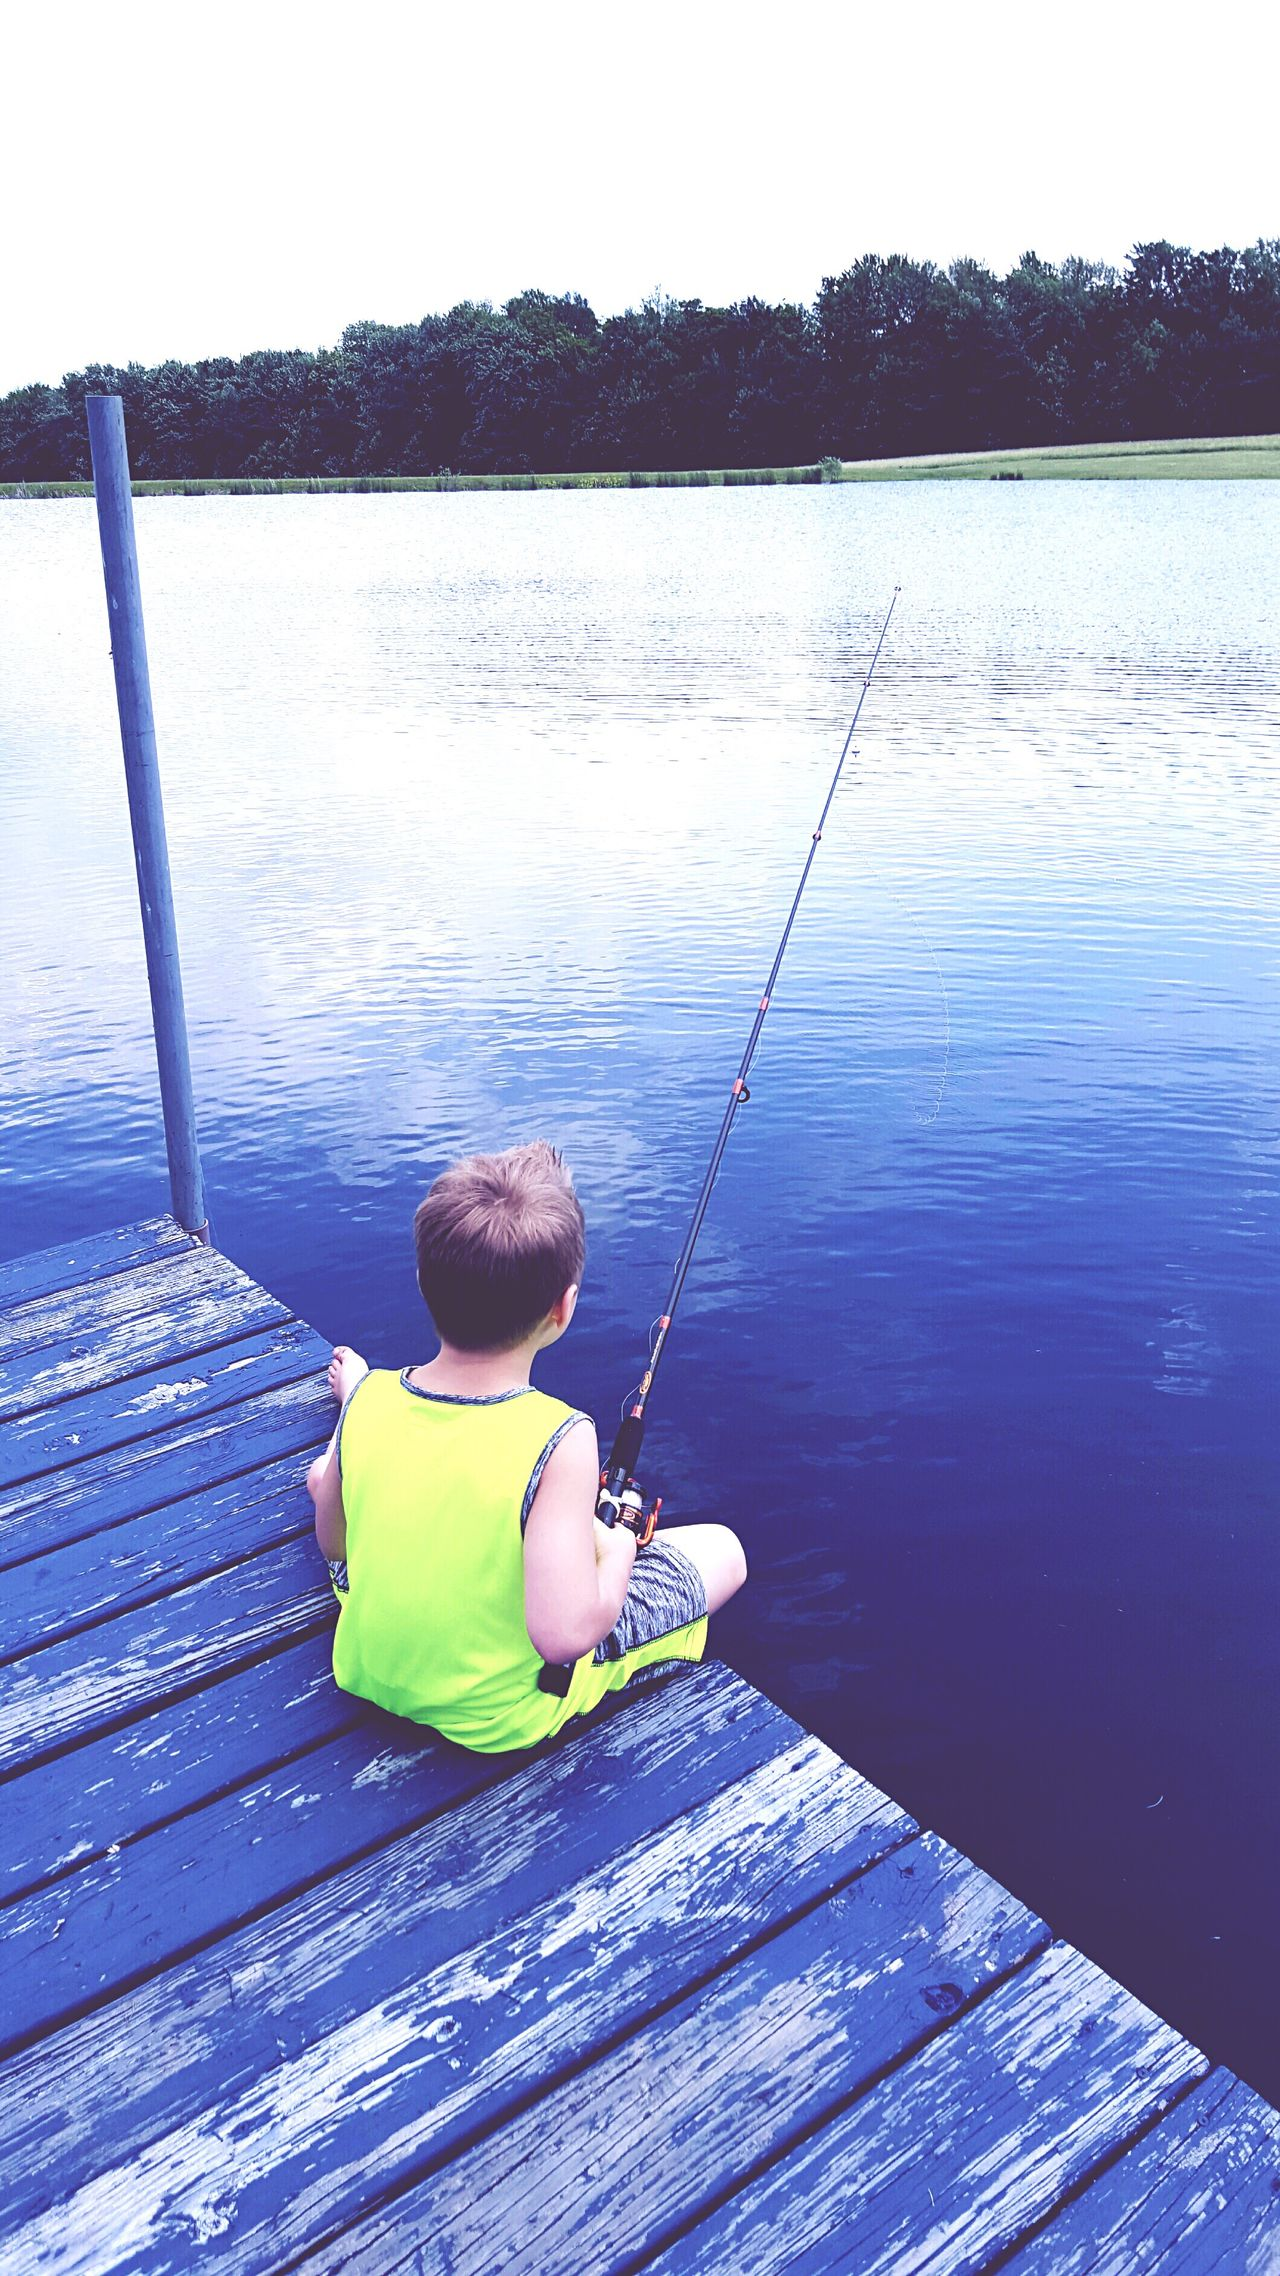 Water Sitting Lifestyles Lake Boys Weekend Activities Day Rear View Hobbies Relaxation Tranquility Vacations Leisure Activity Fishing Getting Away From It All Endicott Ny